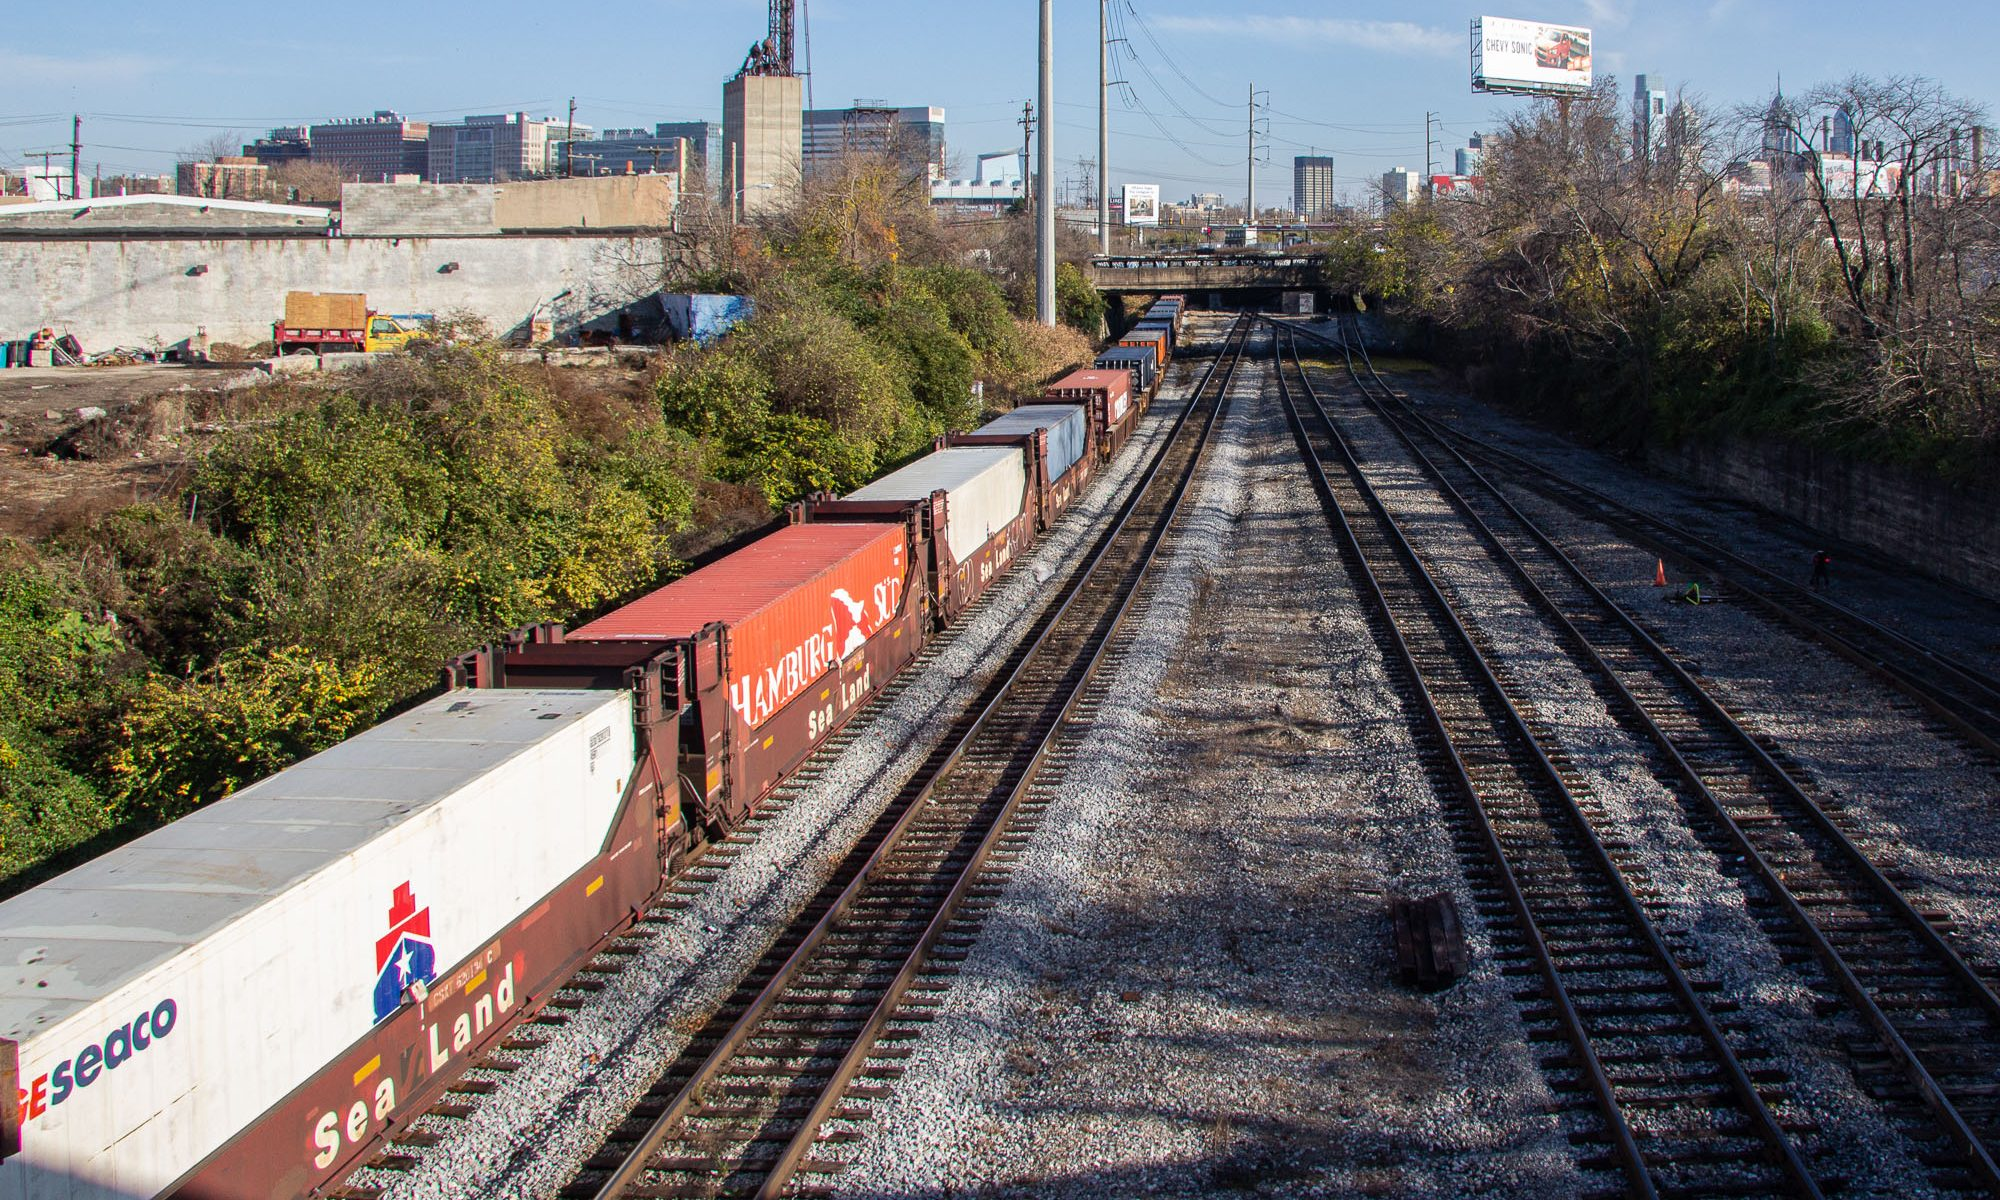 This article is about Docker containers, but here are some shipping containers on railcars. Philadelphia, PA, 2011.